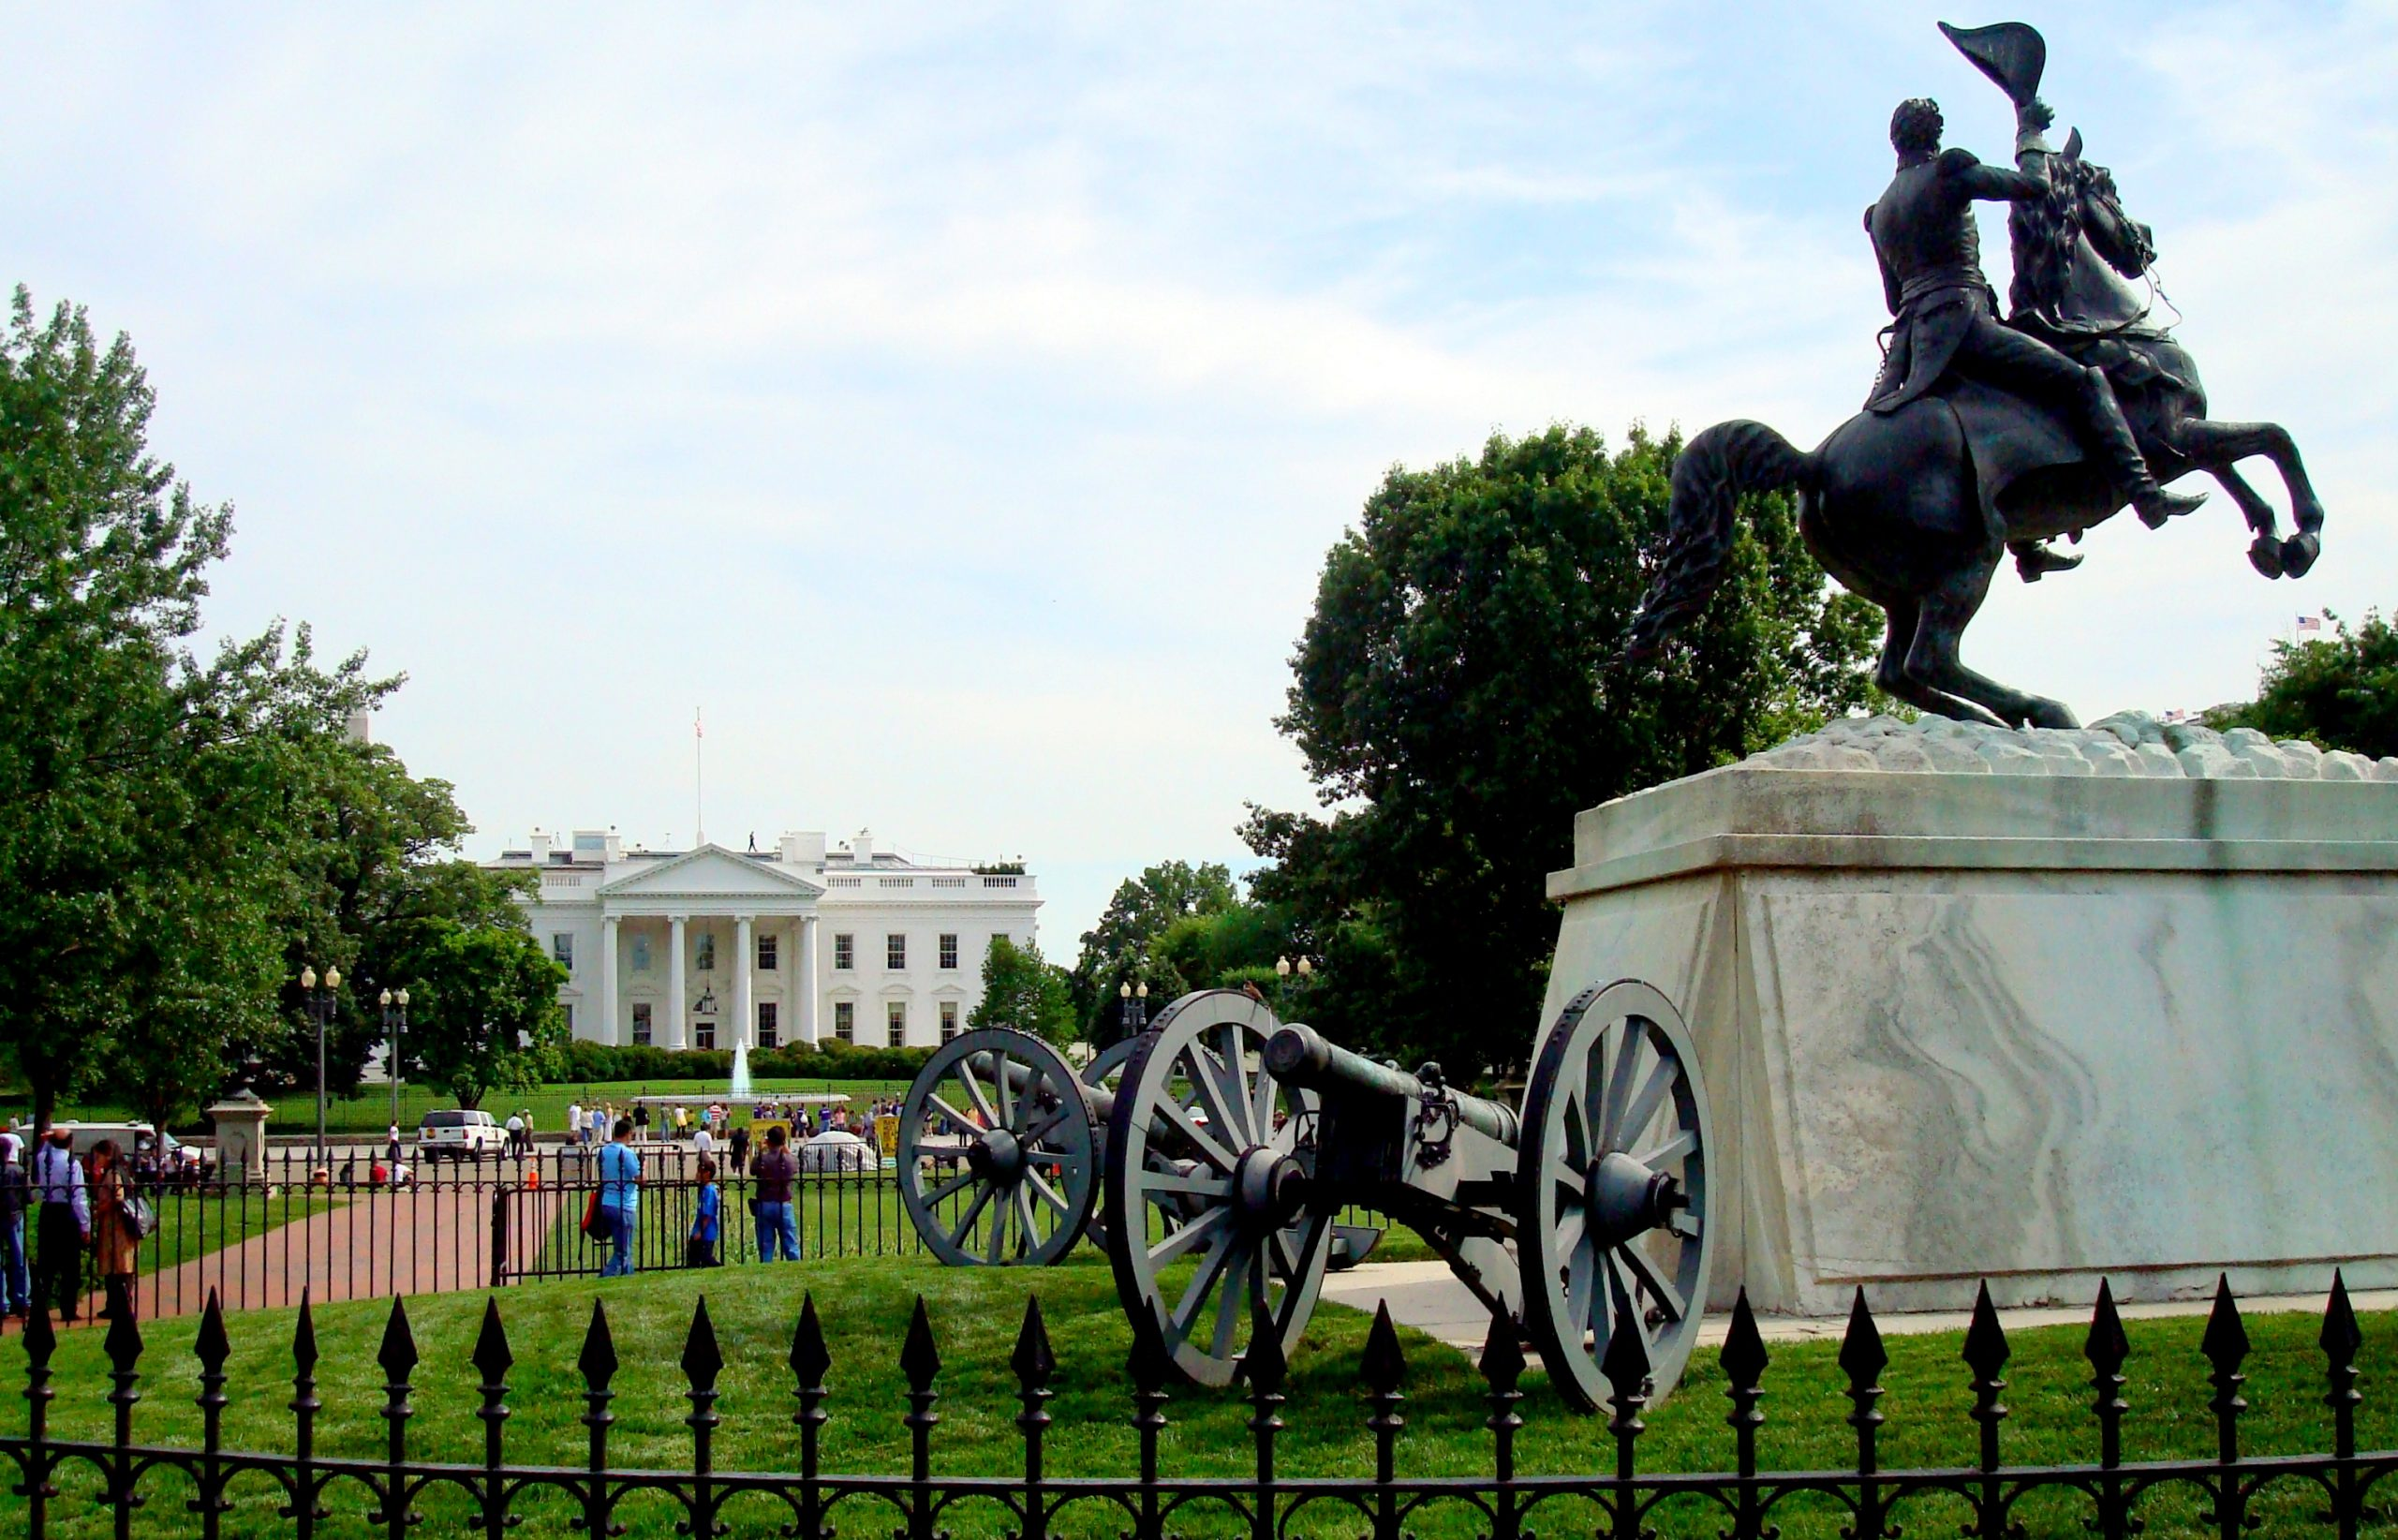 A statue and war canon in White house